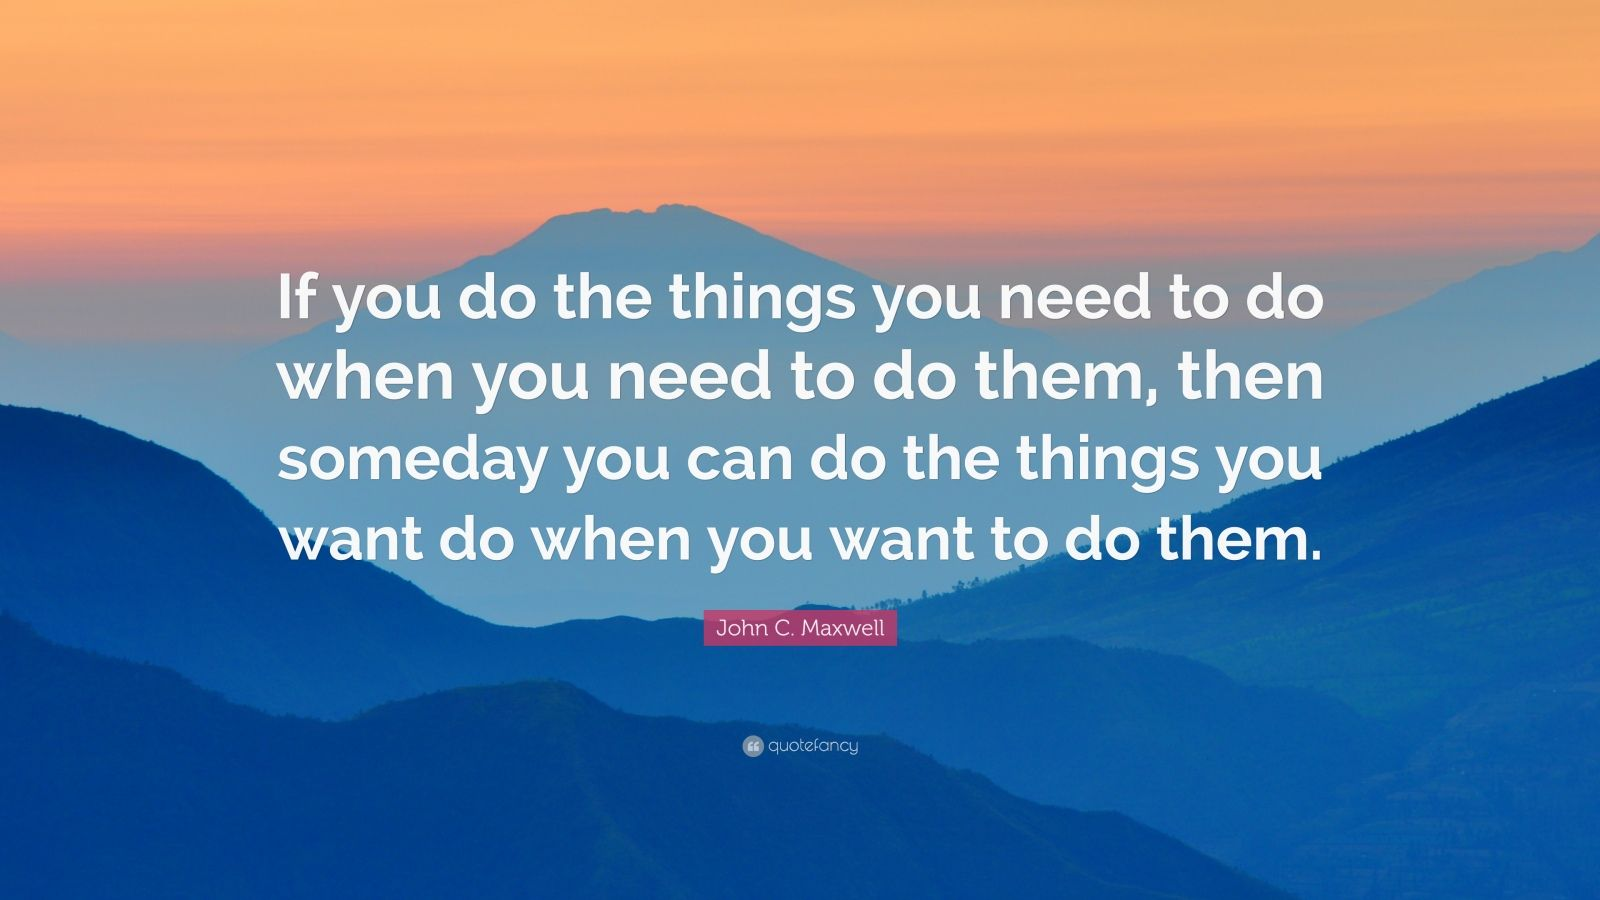 """John C. Maxwell Quote: """"If you do the things you need to do when you need to do them, then someday you can do the things you want do when you want to do them."""""""